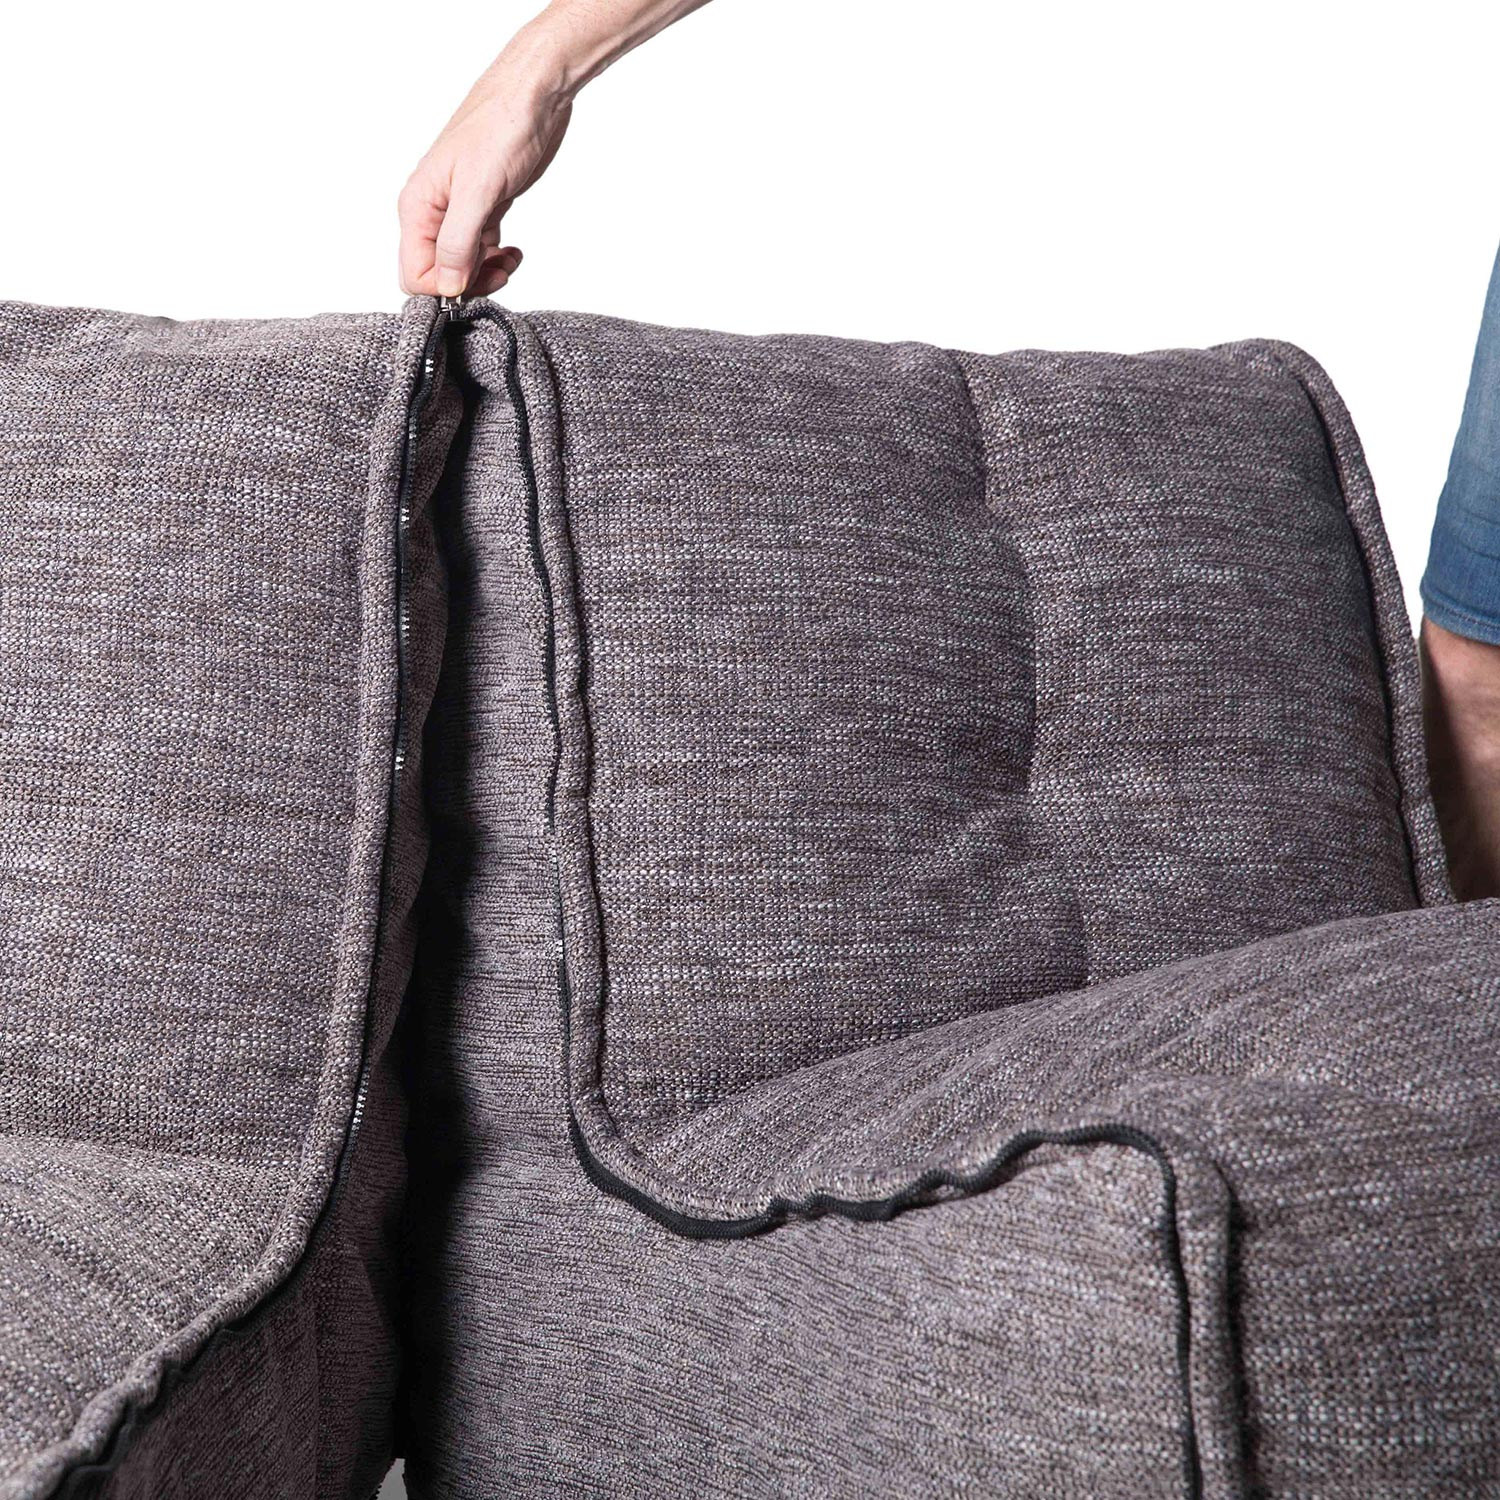 2 Seater Gery Sofa Designer Bean Bag Couch Grey Fabric